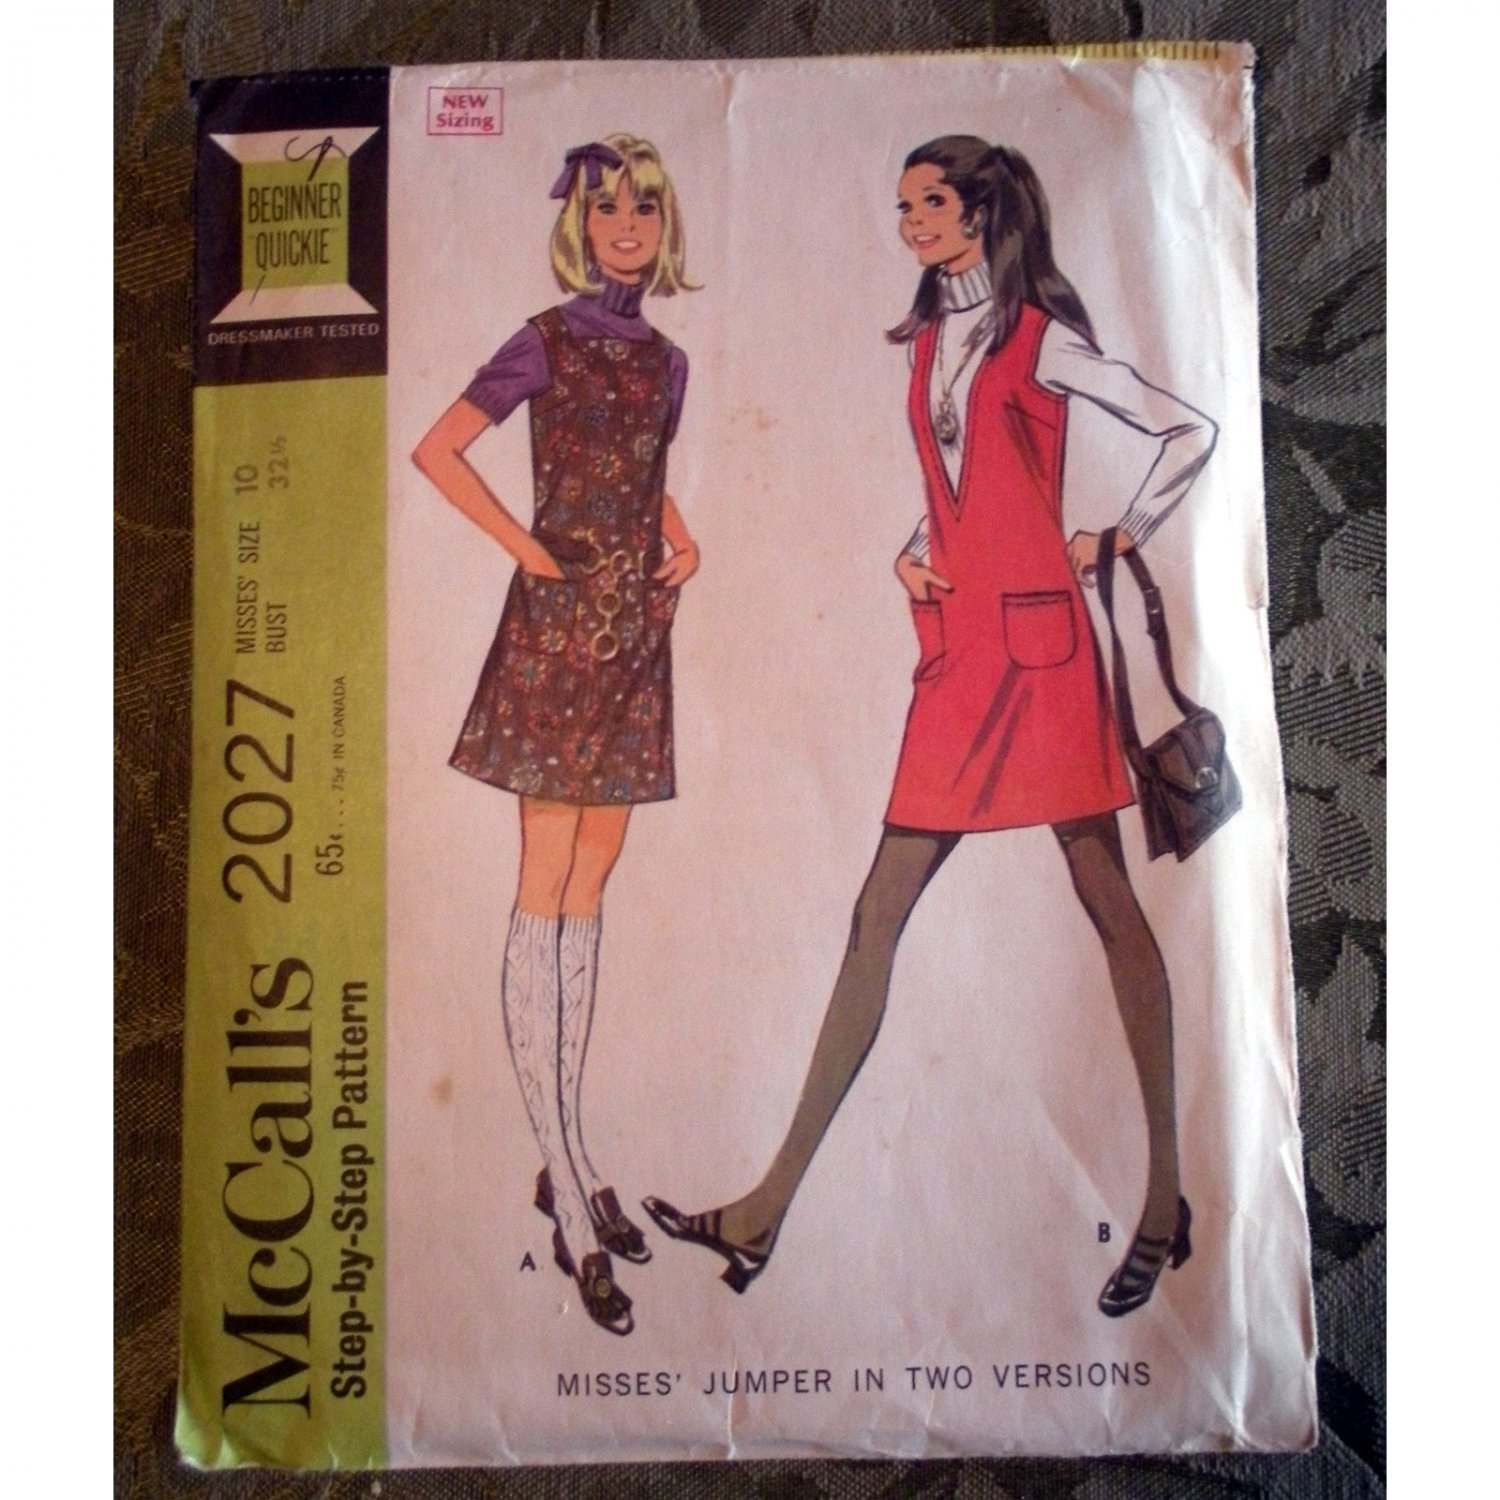 Vintage 1960s McCalls 2027 Size 10 Misses' Jumper in Two Versions Sewing Pattern